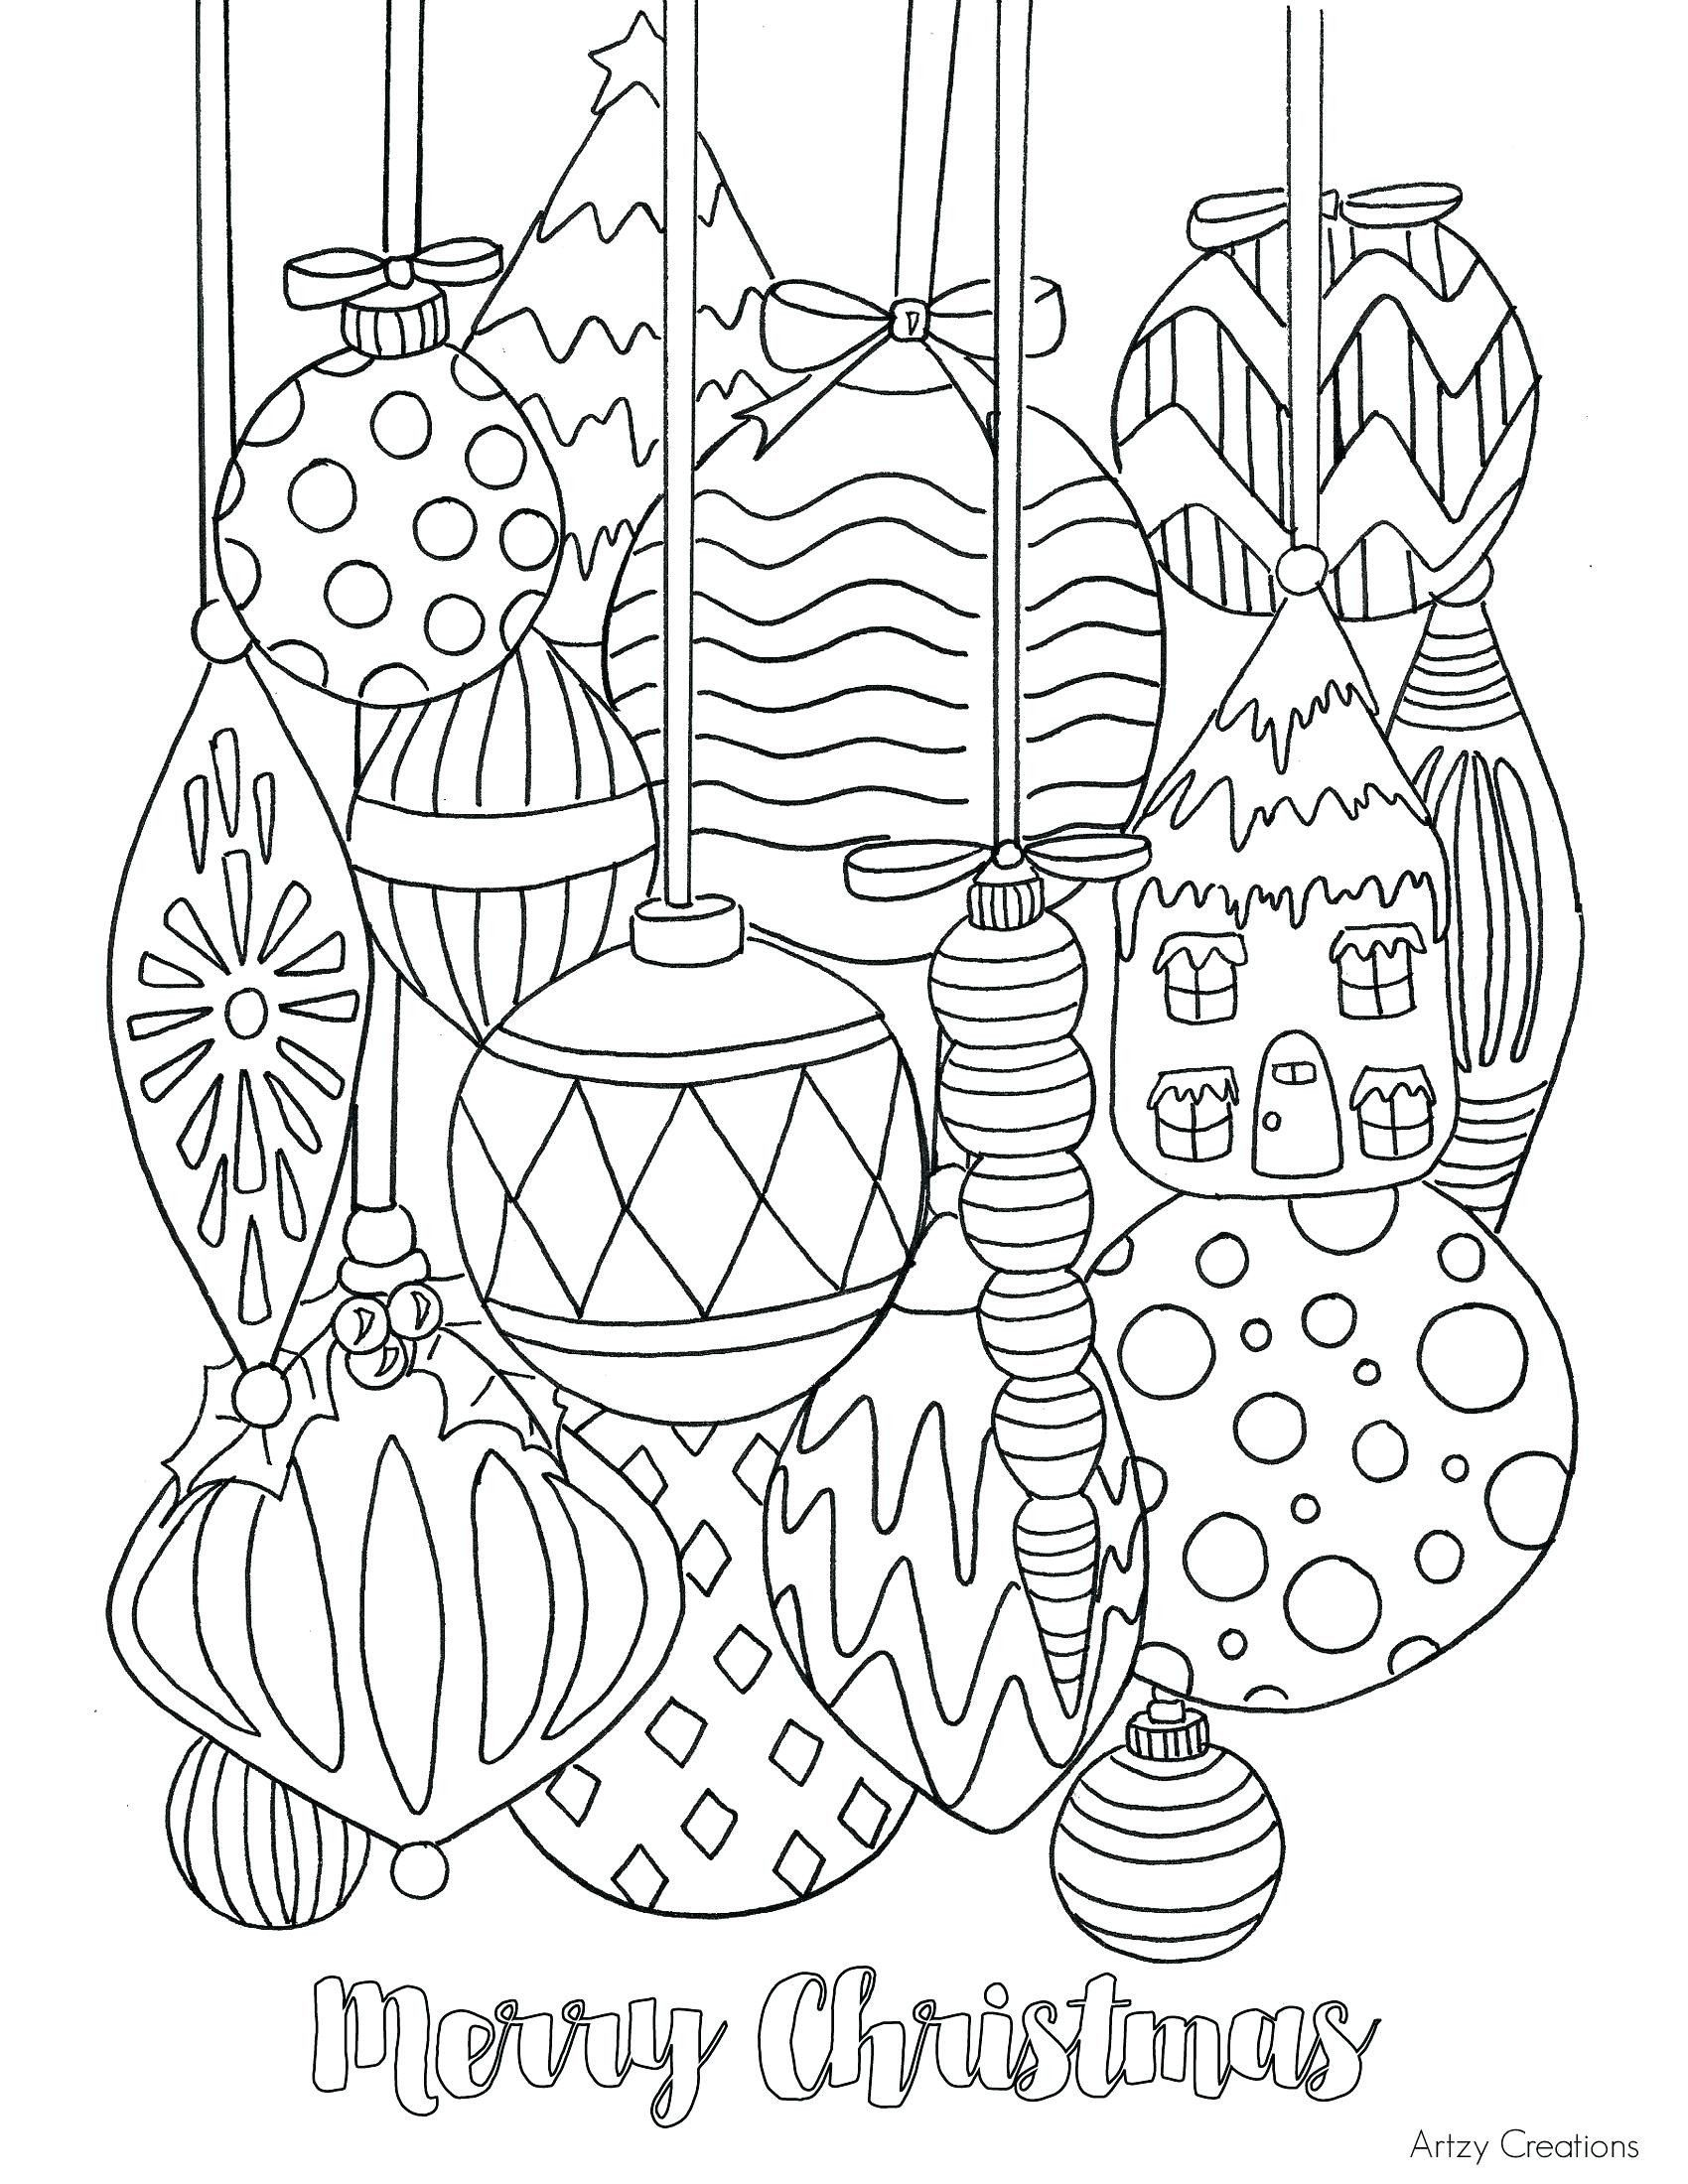 Simple File Sharing And Storage Quote Coloring Pages Coloring Pages Printable Coloring Pages